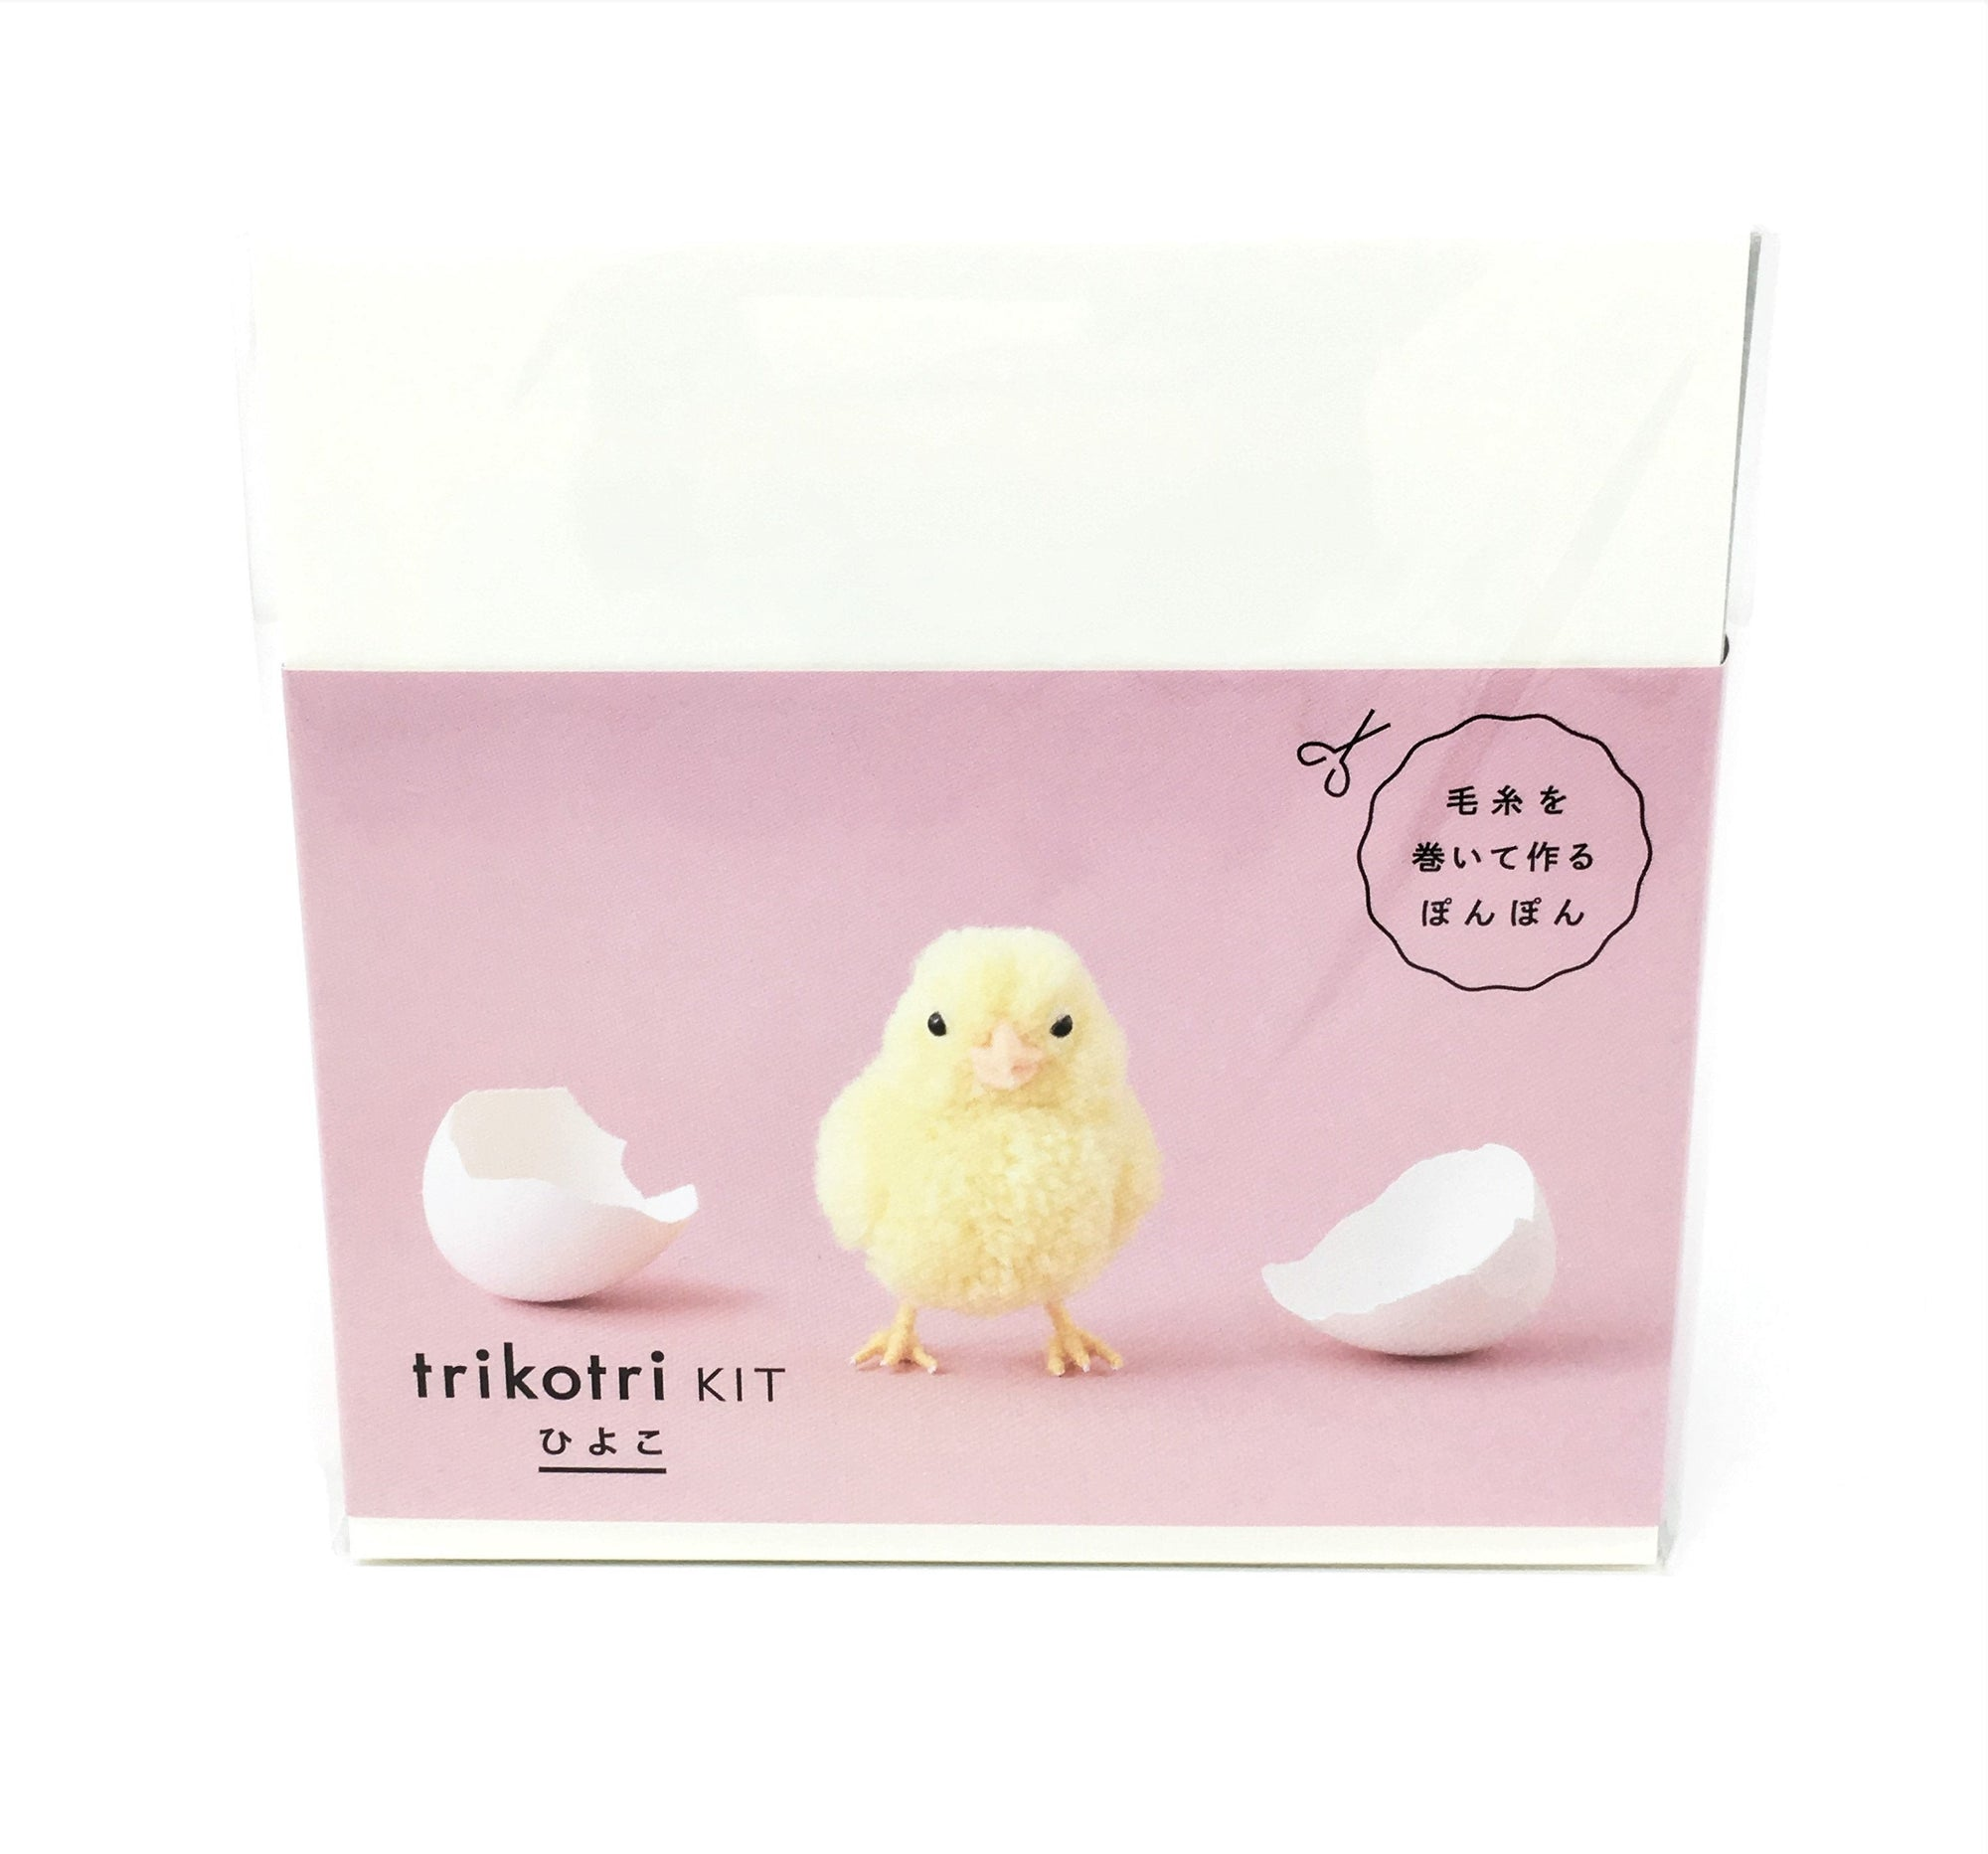 Trikotri KIT - Chick with Egg Pom Pom Kit